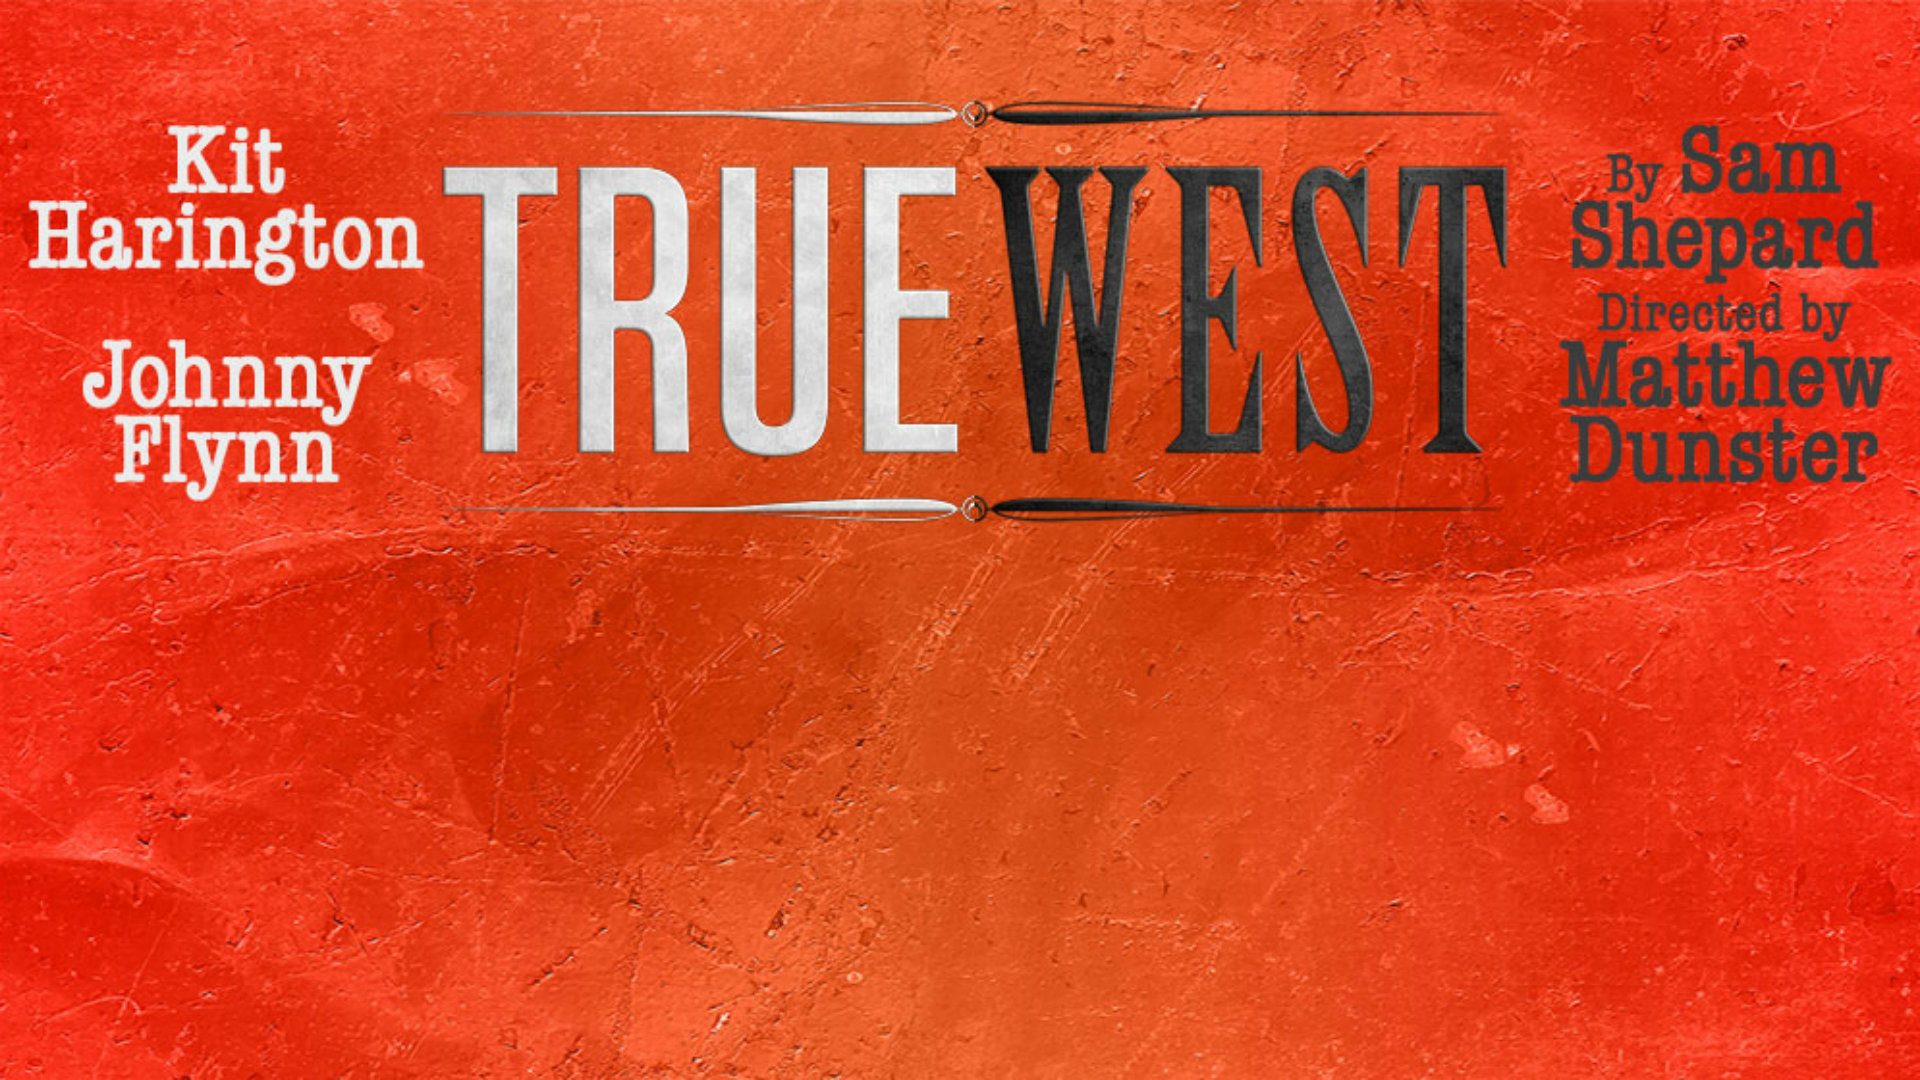 True West written on an orange background. Actors names Kit Harington and Johnny Flynn written in white on the left. By Sam Shepard Directed by Matthew Dunster written in black on the right.